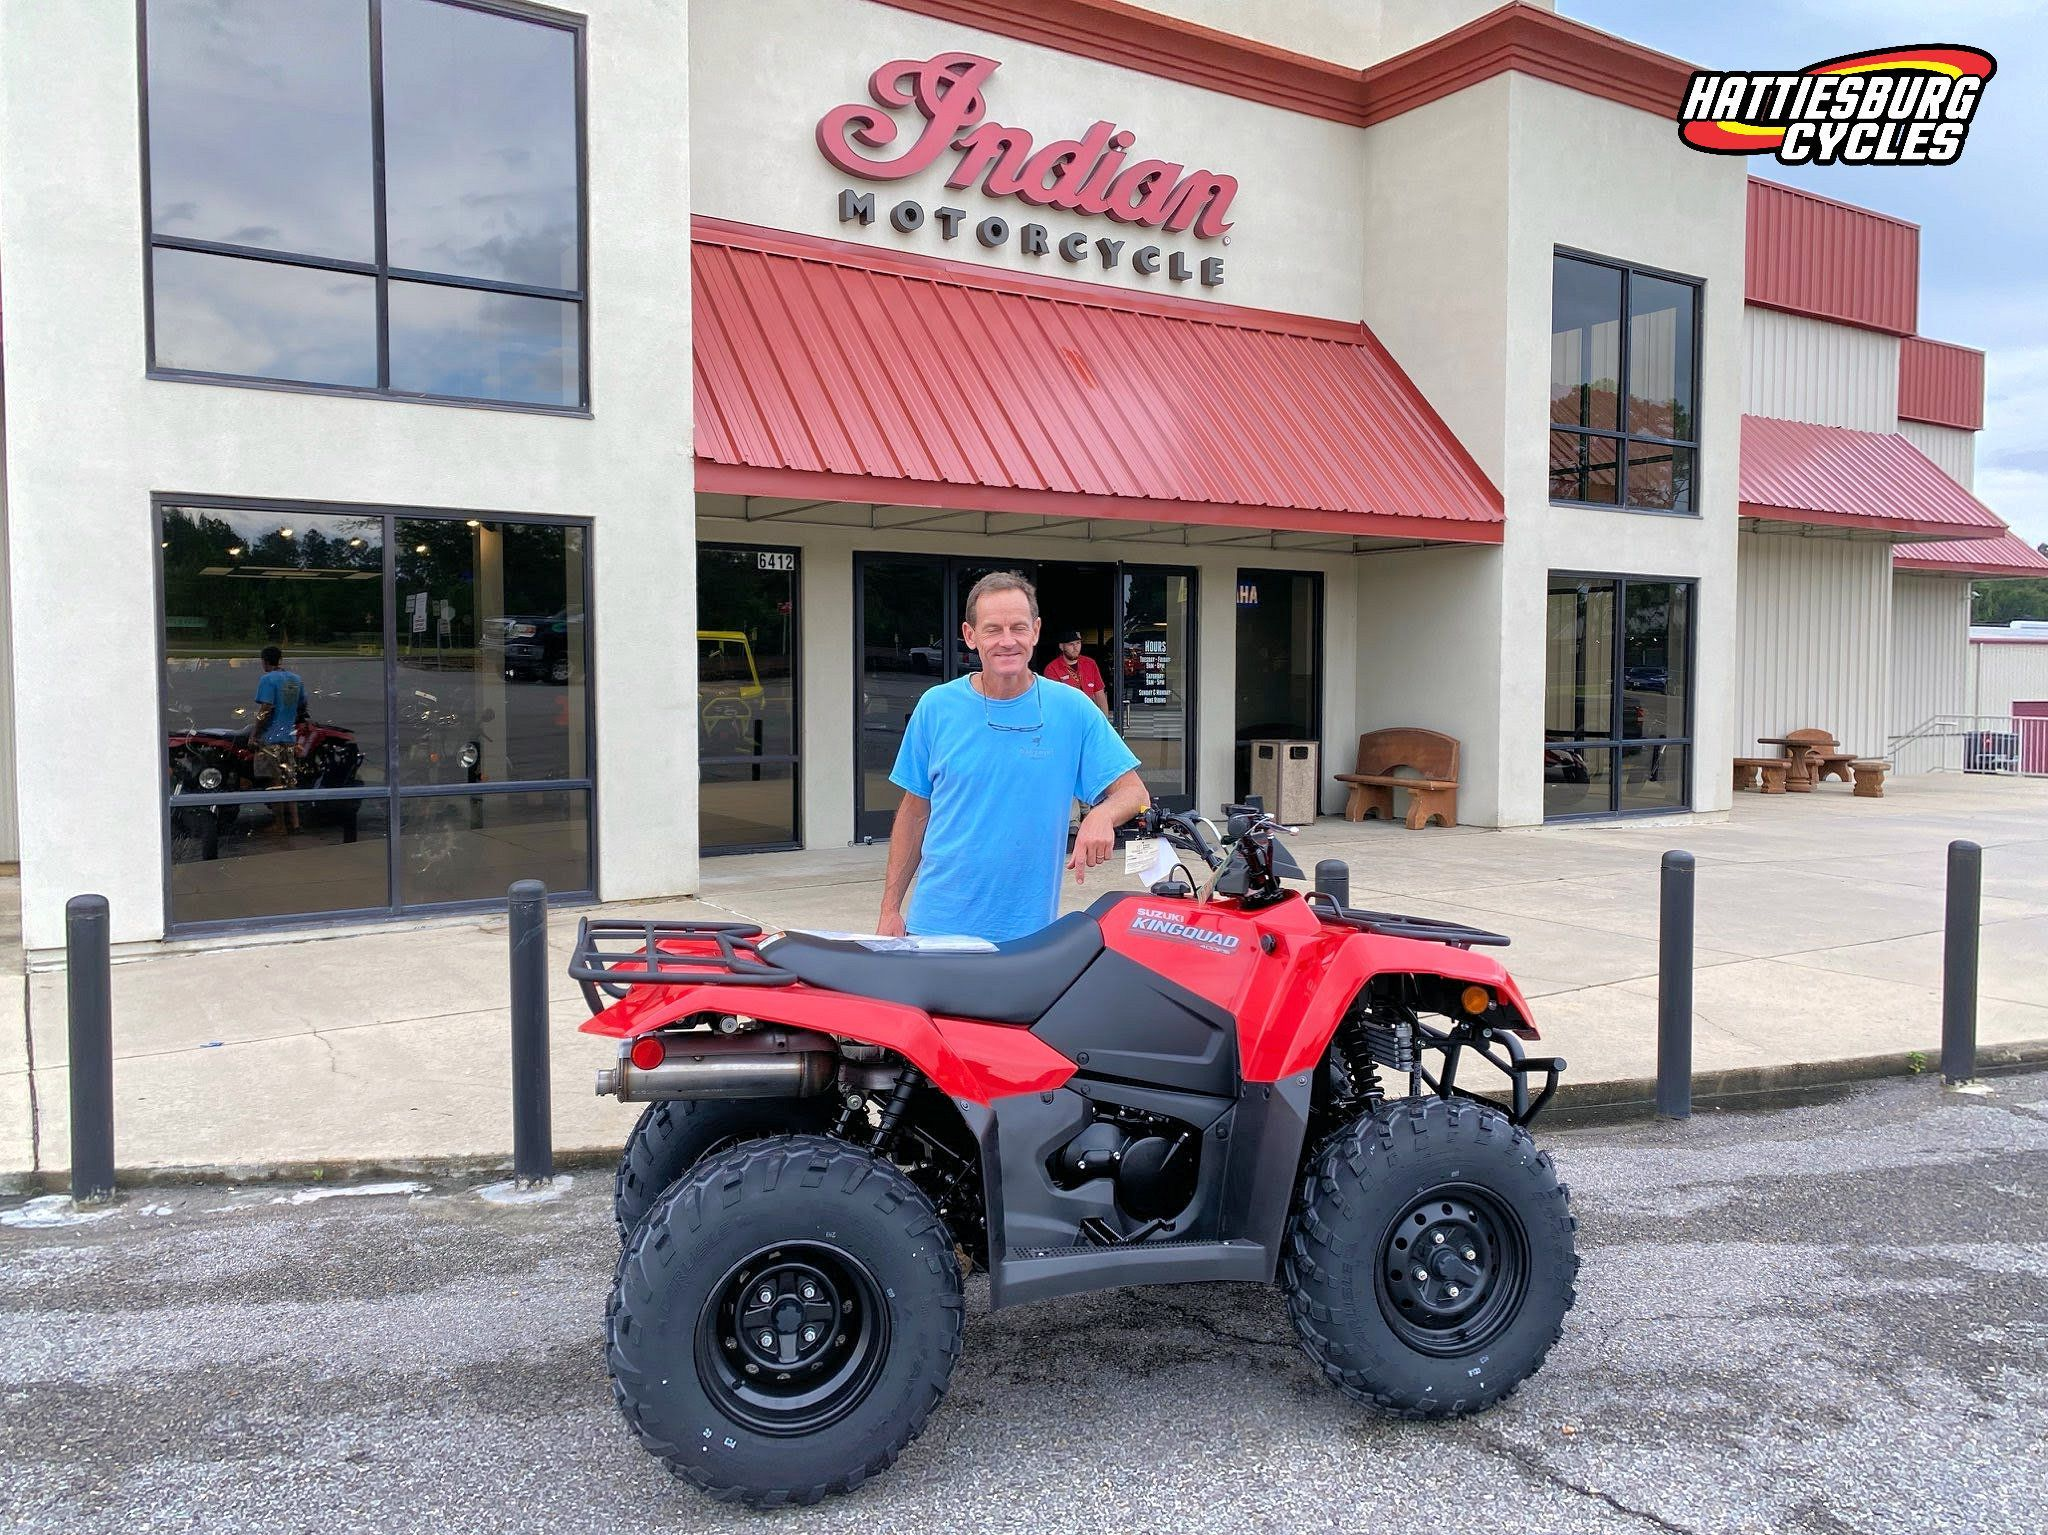 Congratulations To David Mckellar From Purvis Ms For Purchasing A 2020 Suzuki Kingquad 400 At Hattiesburg Cycles Suzuki Hattiesburg Suzuki Monster Trucks